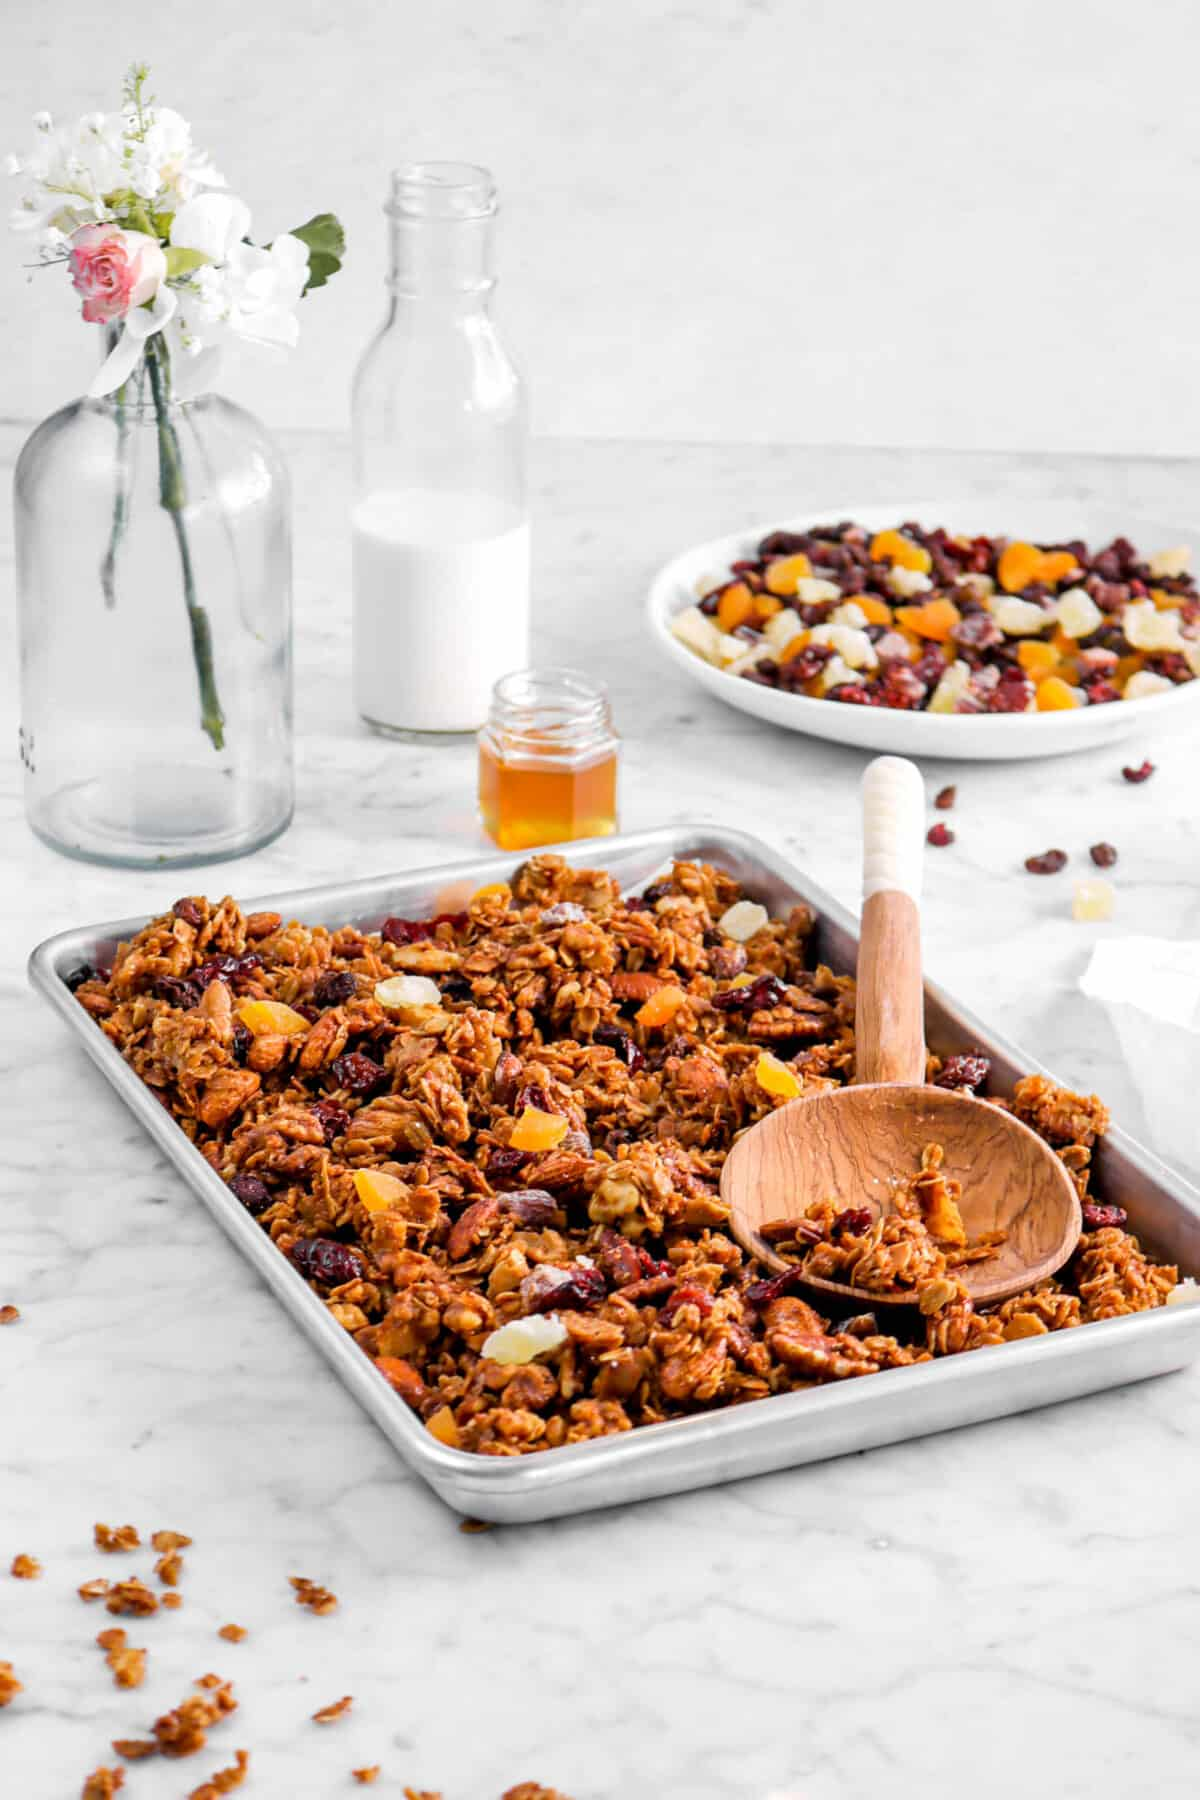 granola in sheet pan with wooden spoon, bowl of dried fruit, milk glass, honey pot, and flowers